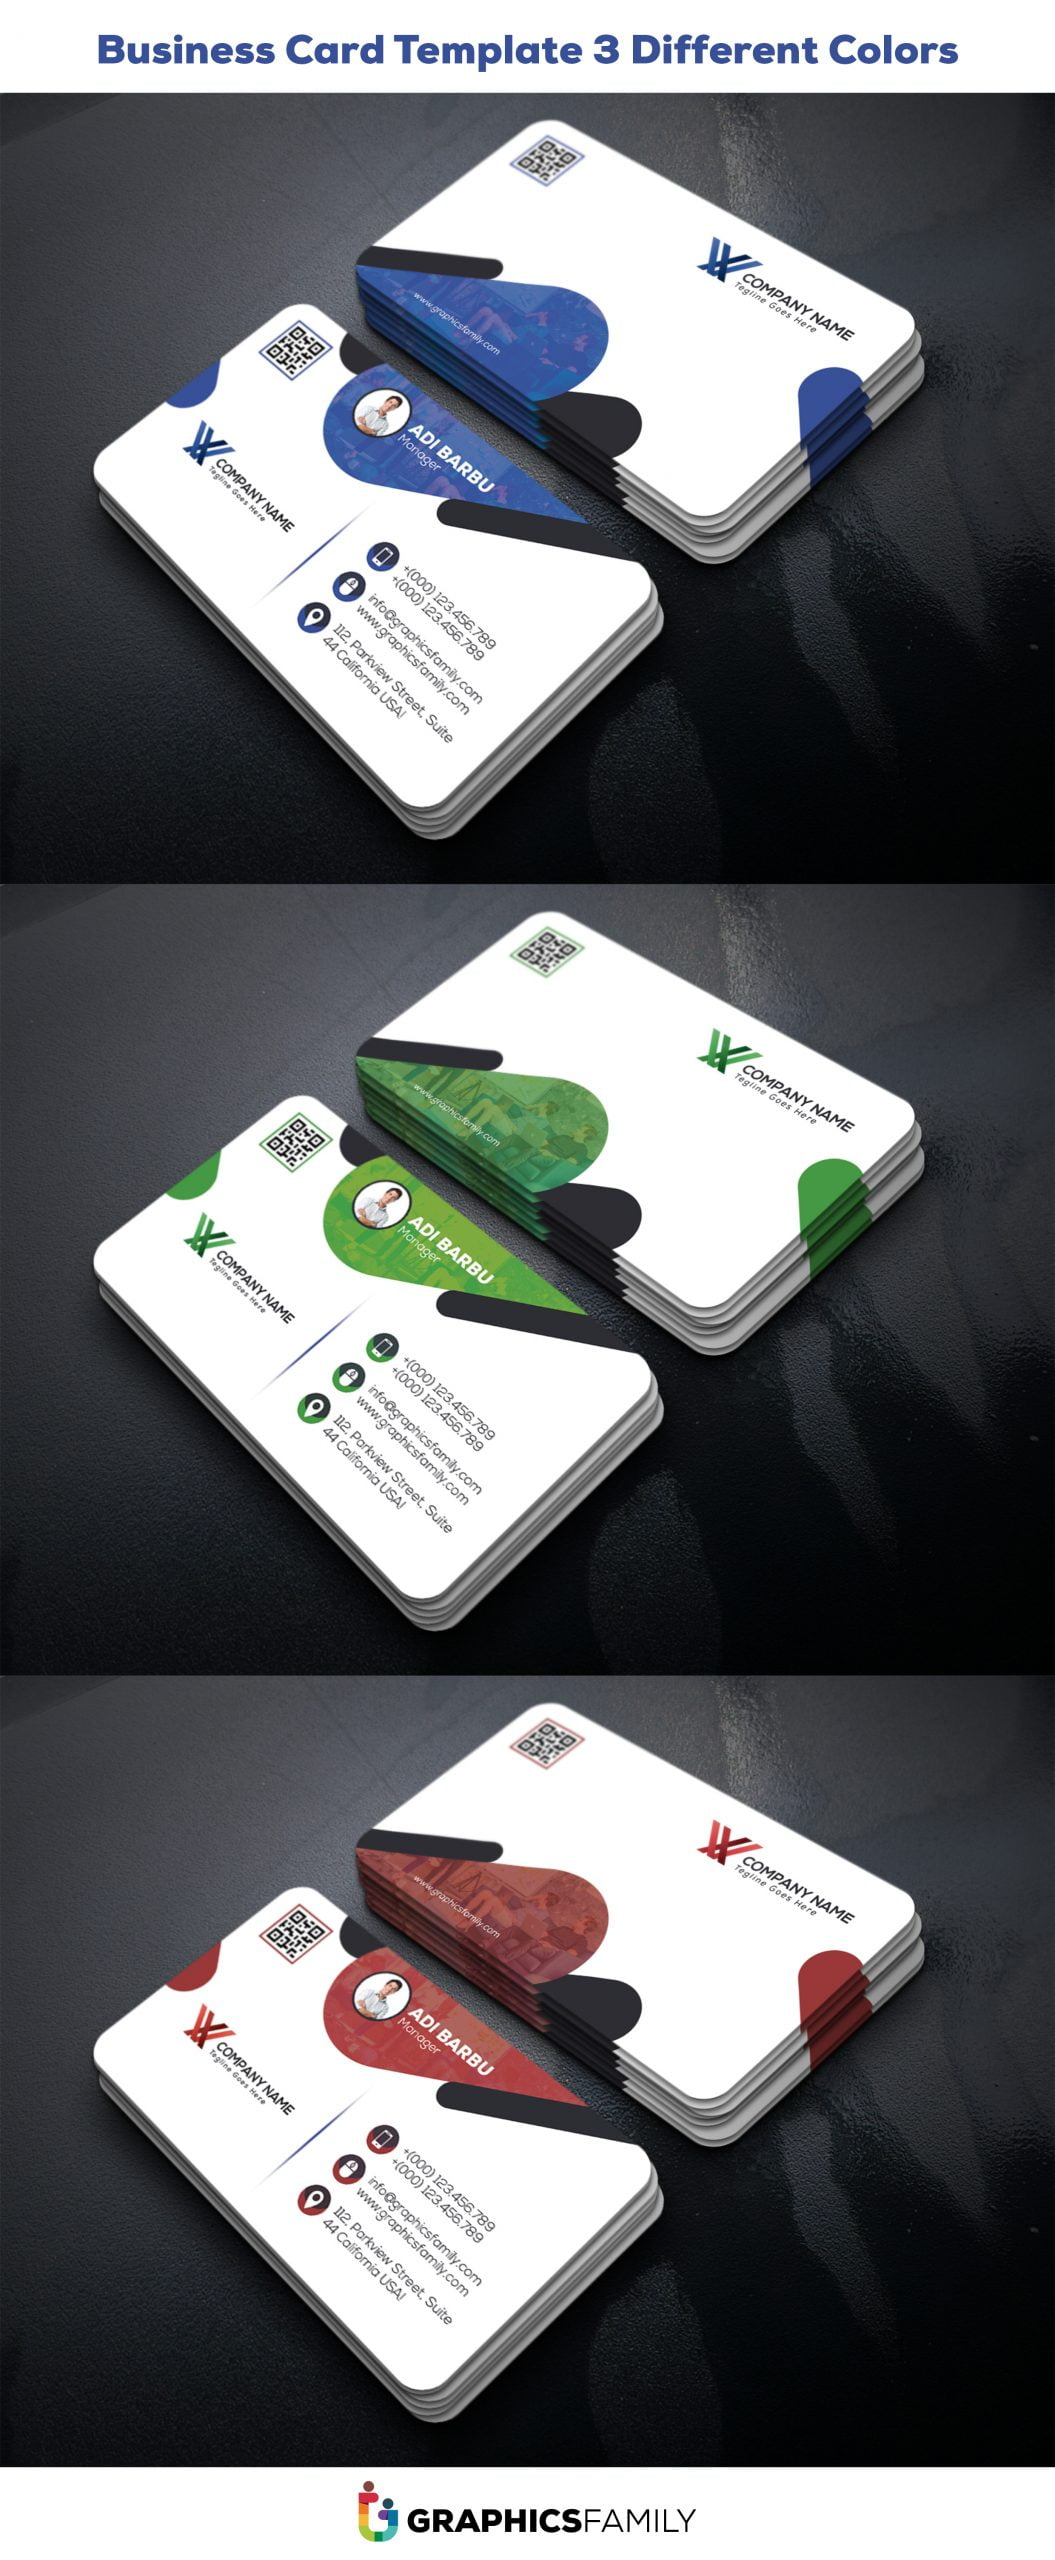 Company Manager Business Card Design